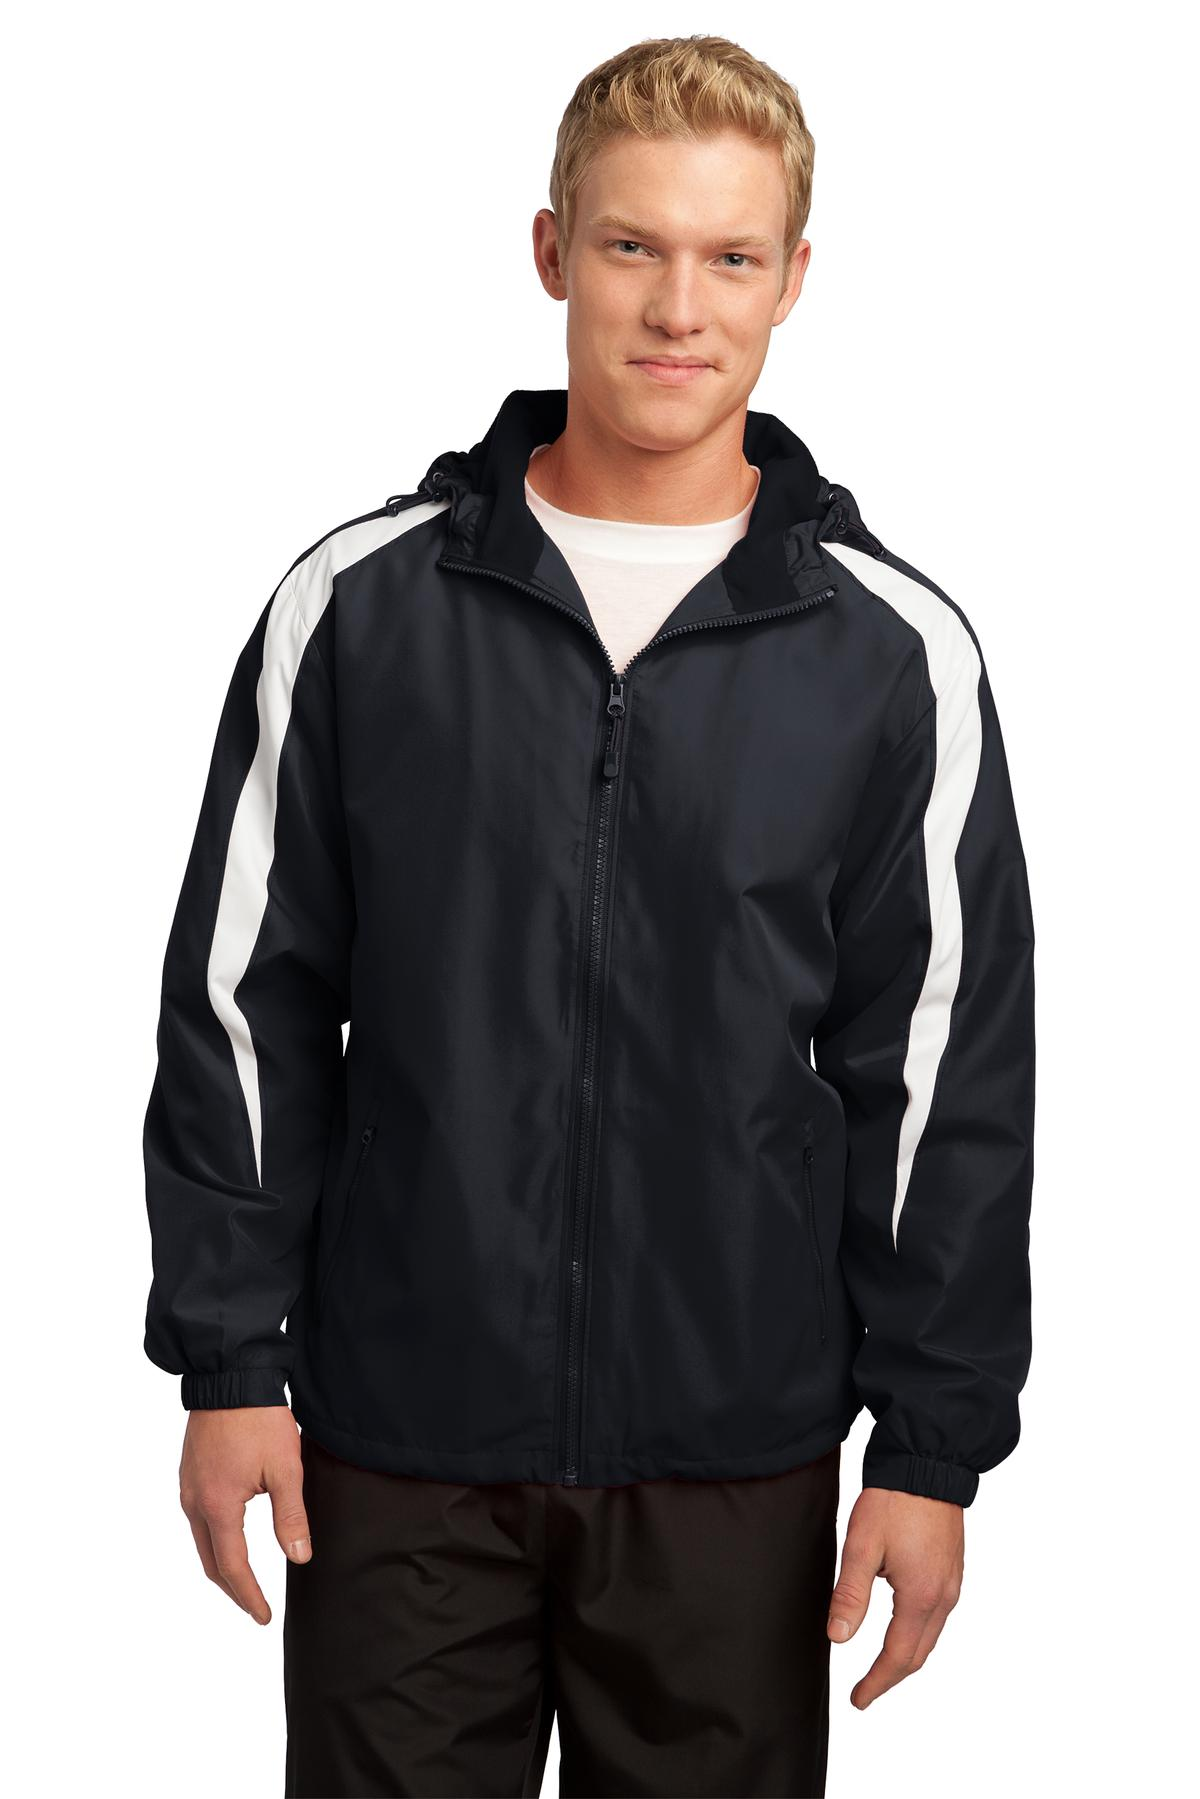 Sport-Tek ®  Fleece-Lined Colorblock Jacket. JST81 - Black/White